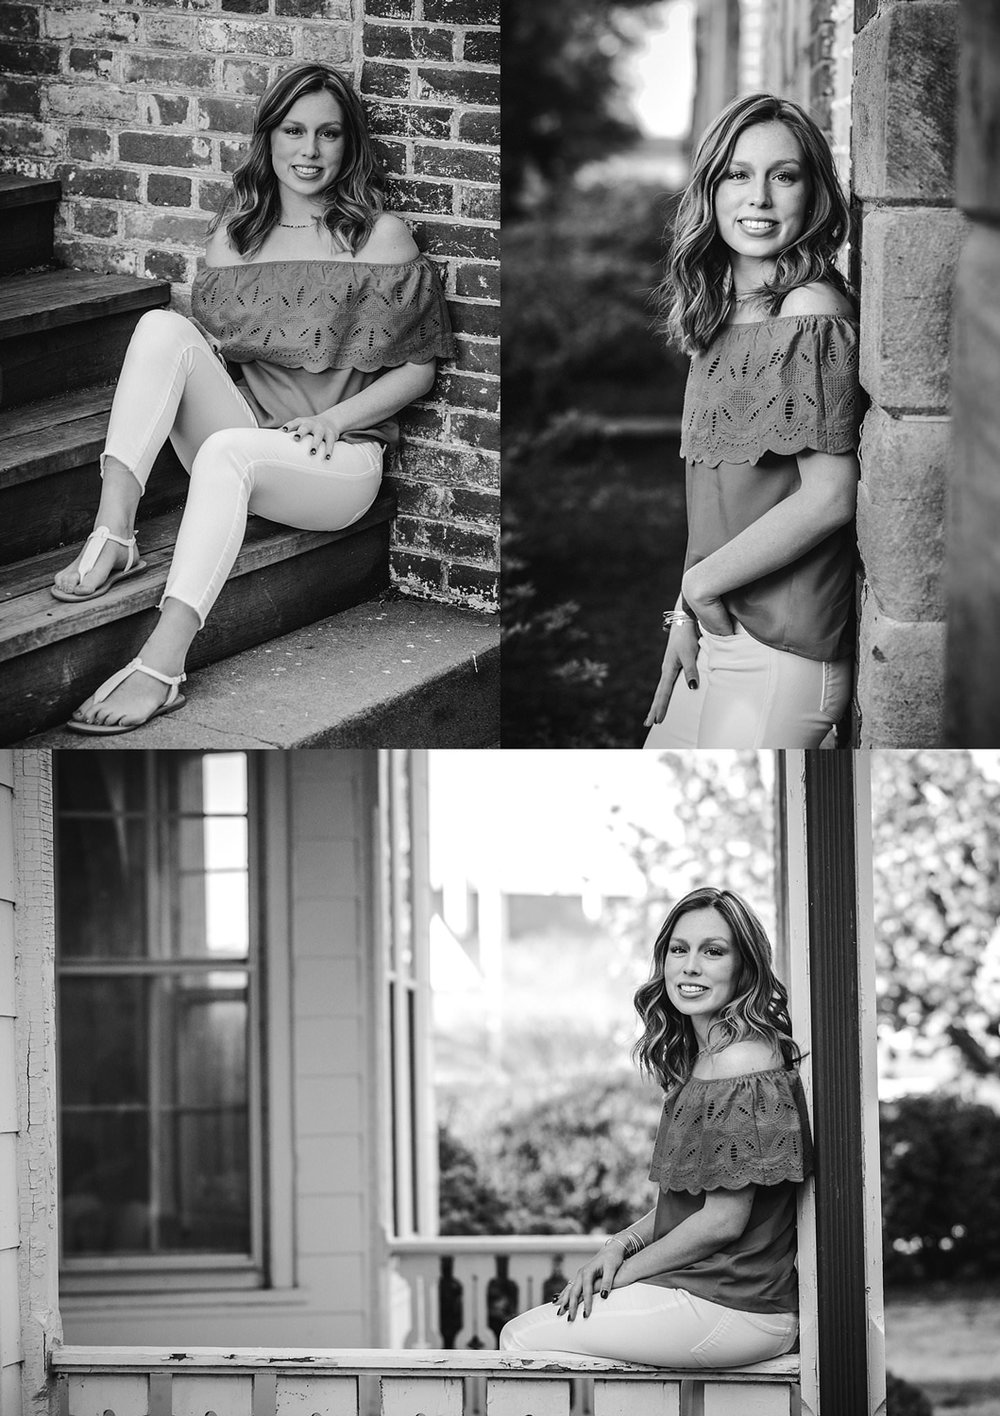 creative-black-and-white-senior-portraits-melissa-bliss-photography-virginia-beach-session.jpg